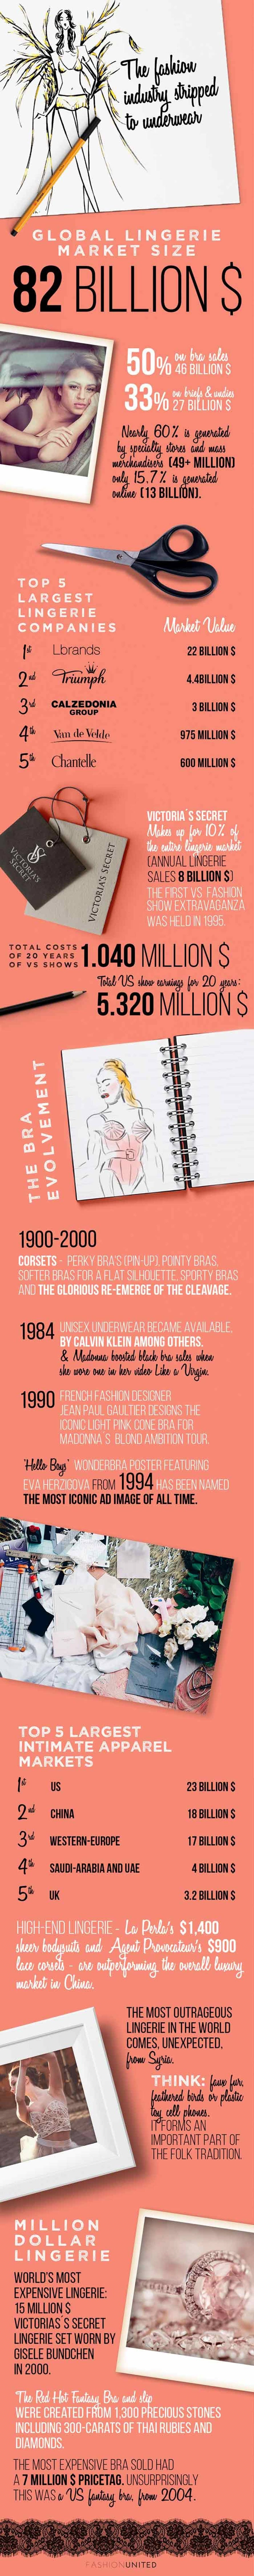 Infographic - A Lesson in Lingerie